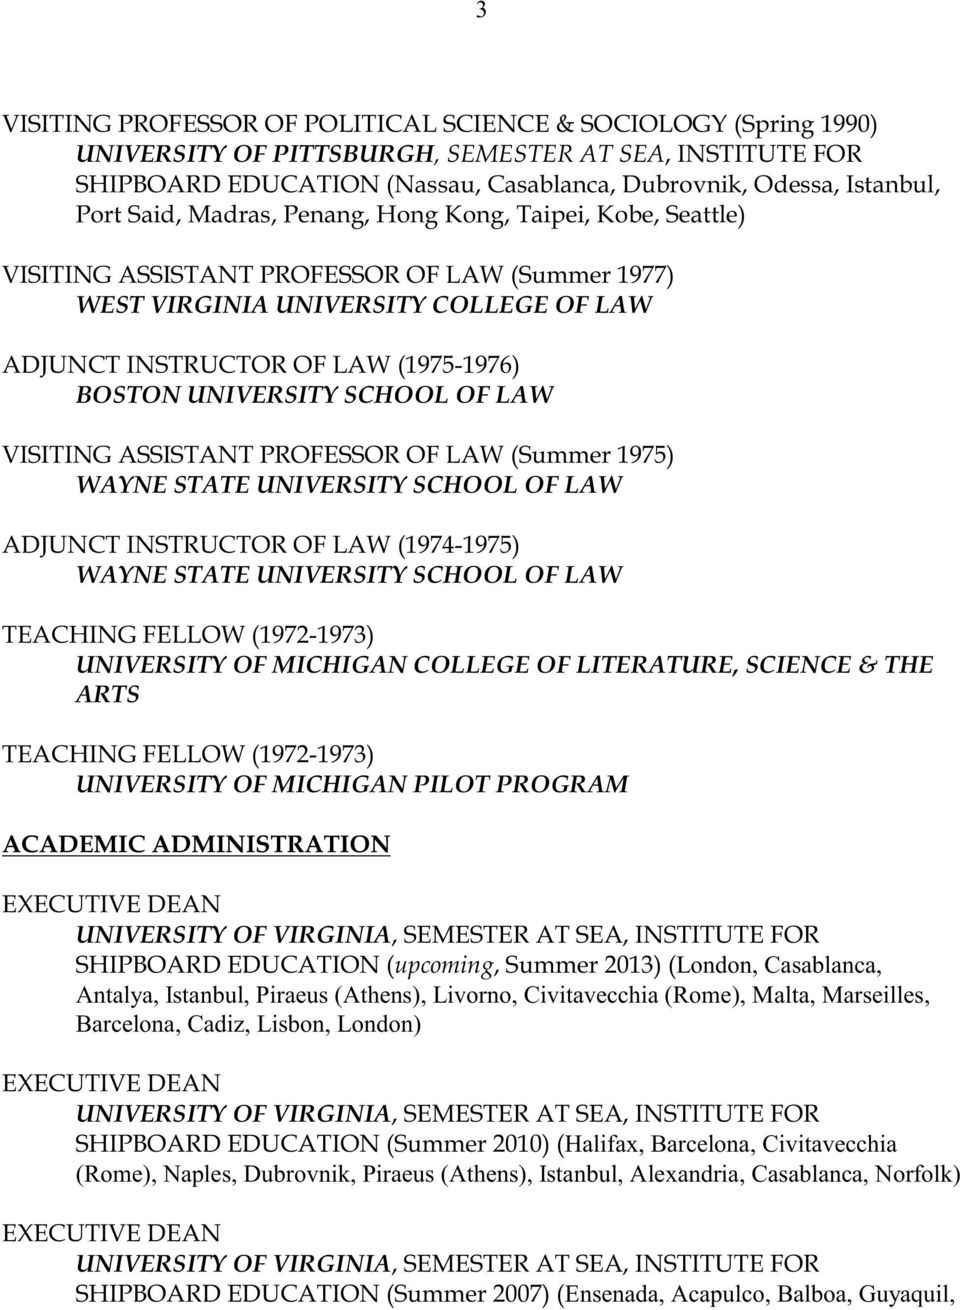 UNIVERSITY SCHOOL OF LAW VISITING ASSISTANT PROFESSOR OF LAW (Summer 1975) WAYNE STATE UNIVERSITY SCHOOL OF LAW ADJUNCT INSTRUCTOR OF LAW (1974-1975) WAYNE STATE UNIVERSITY SCHOOL OF LAW TEACHING